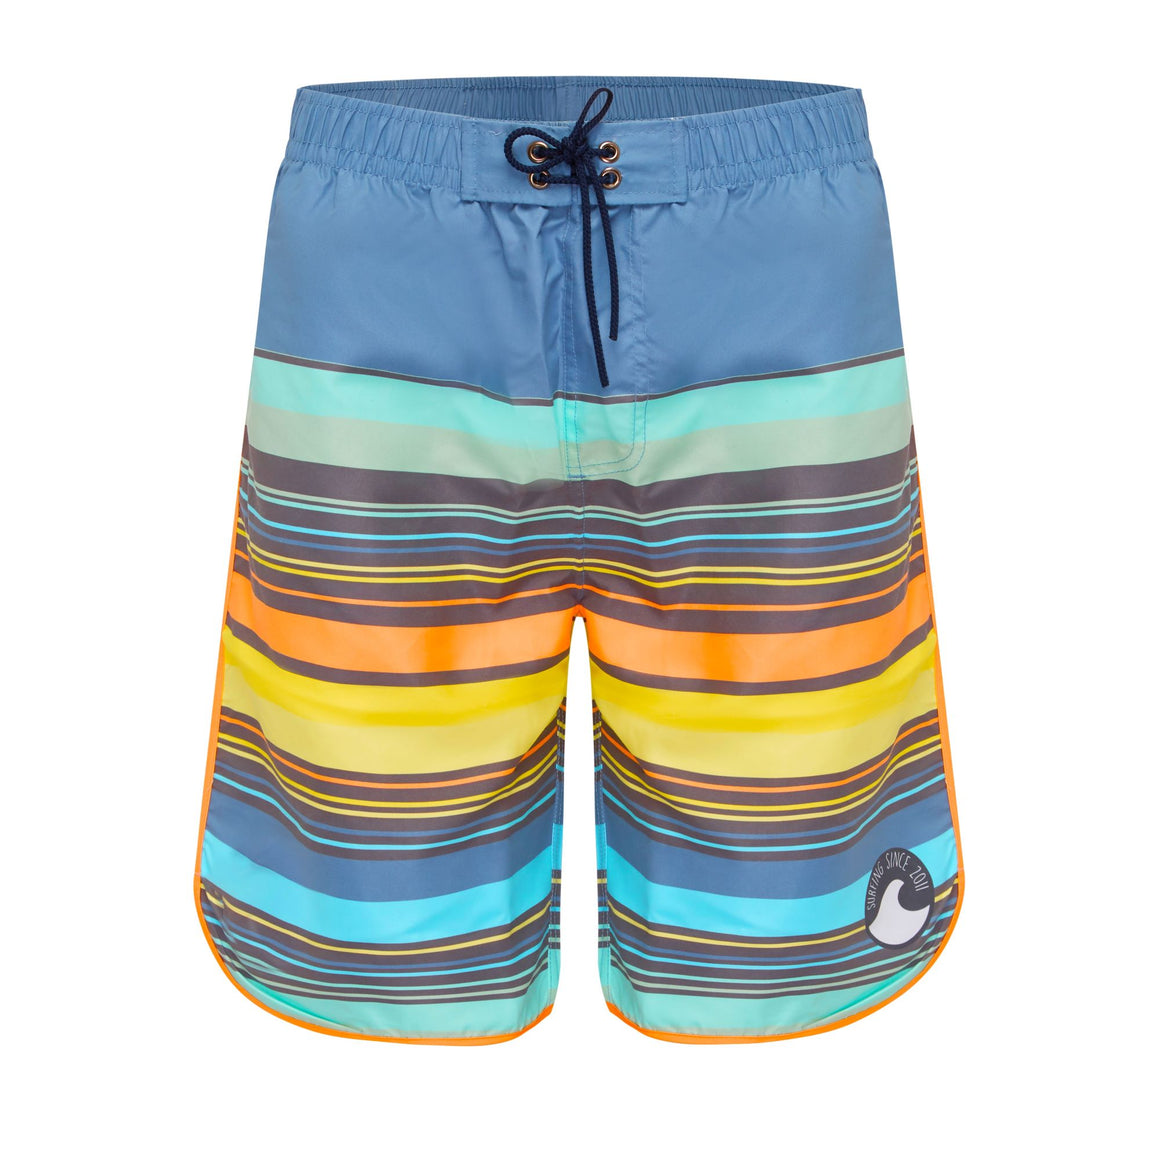 Long Scoop Boardshorts - Boys Retro Vibes Senior